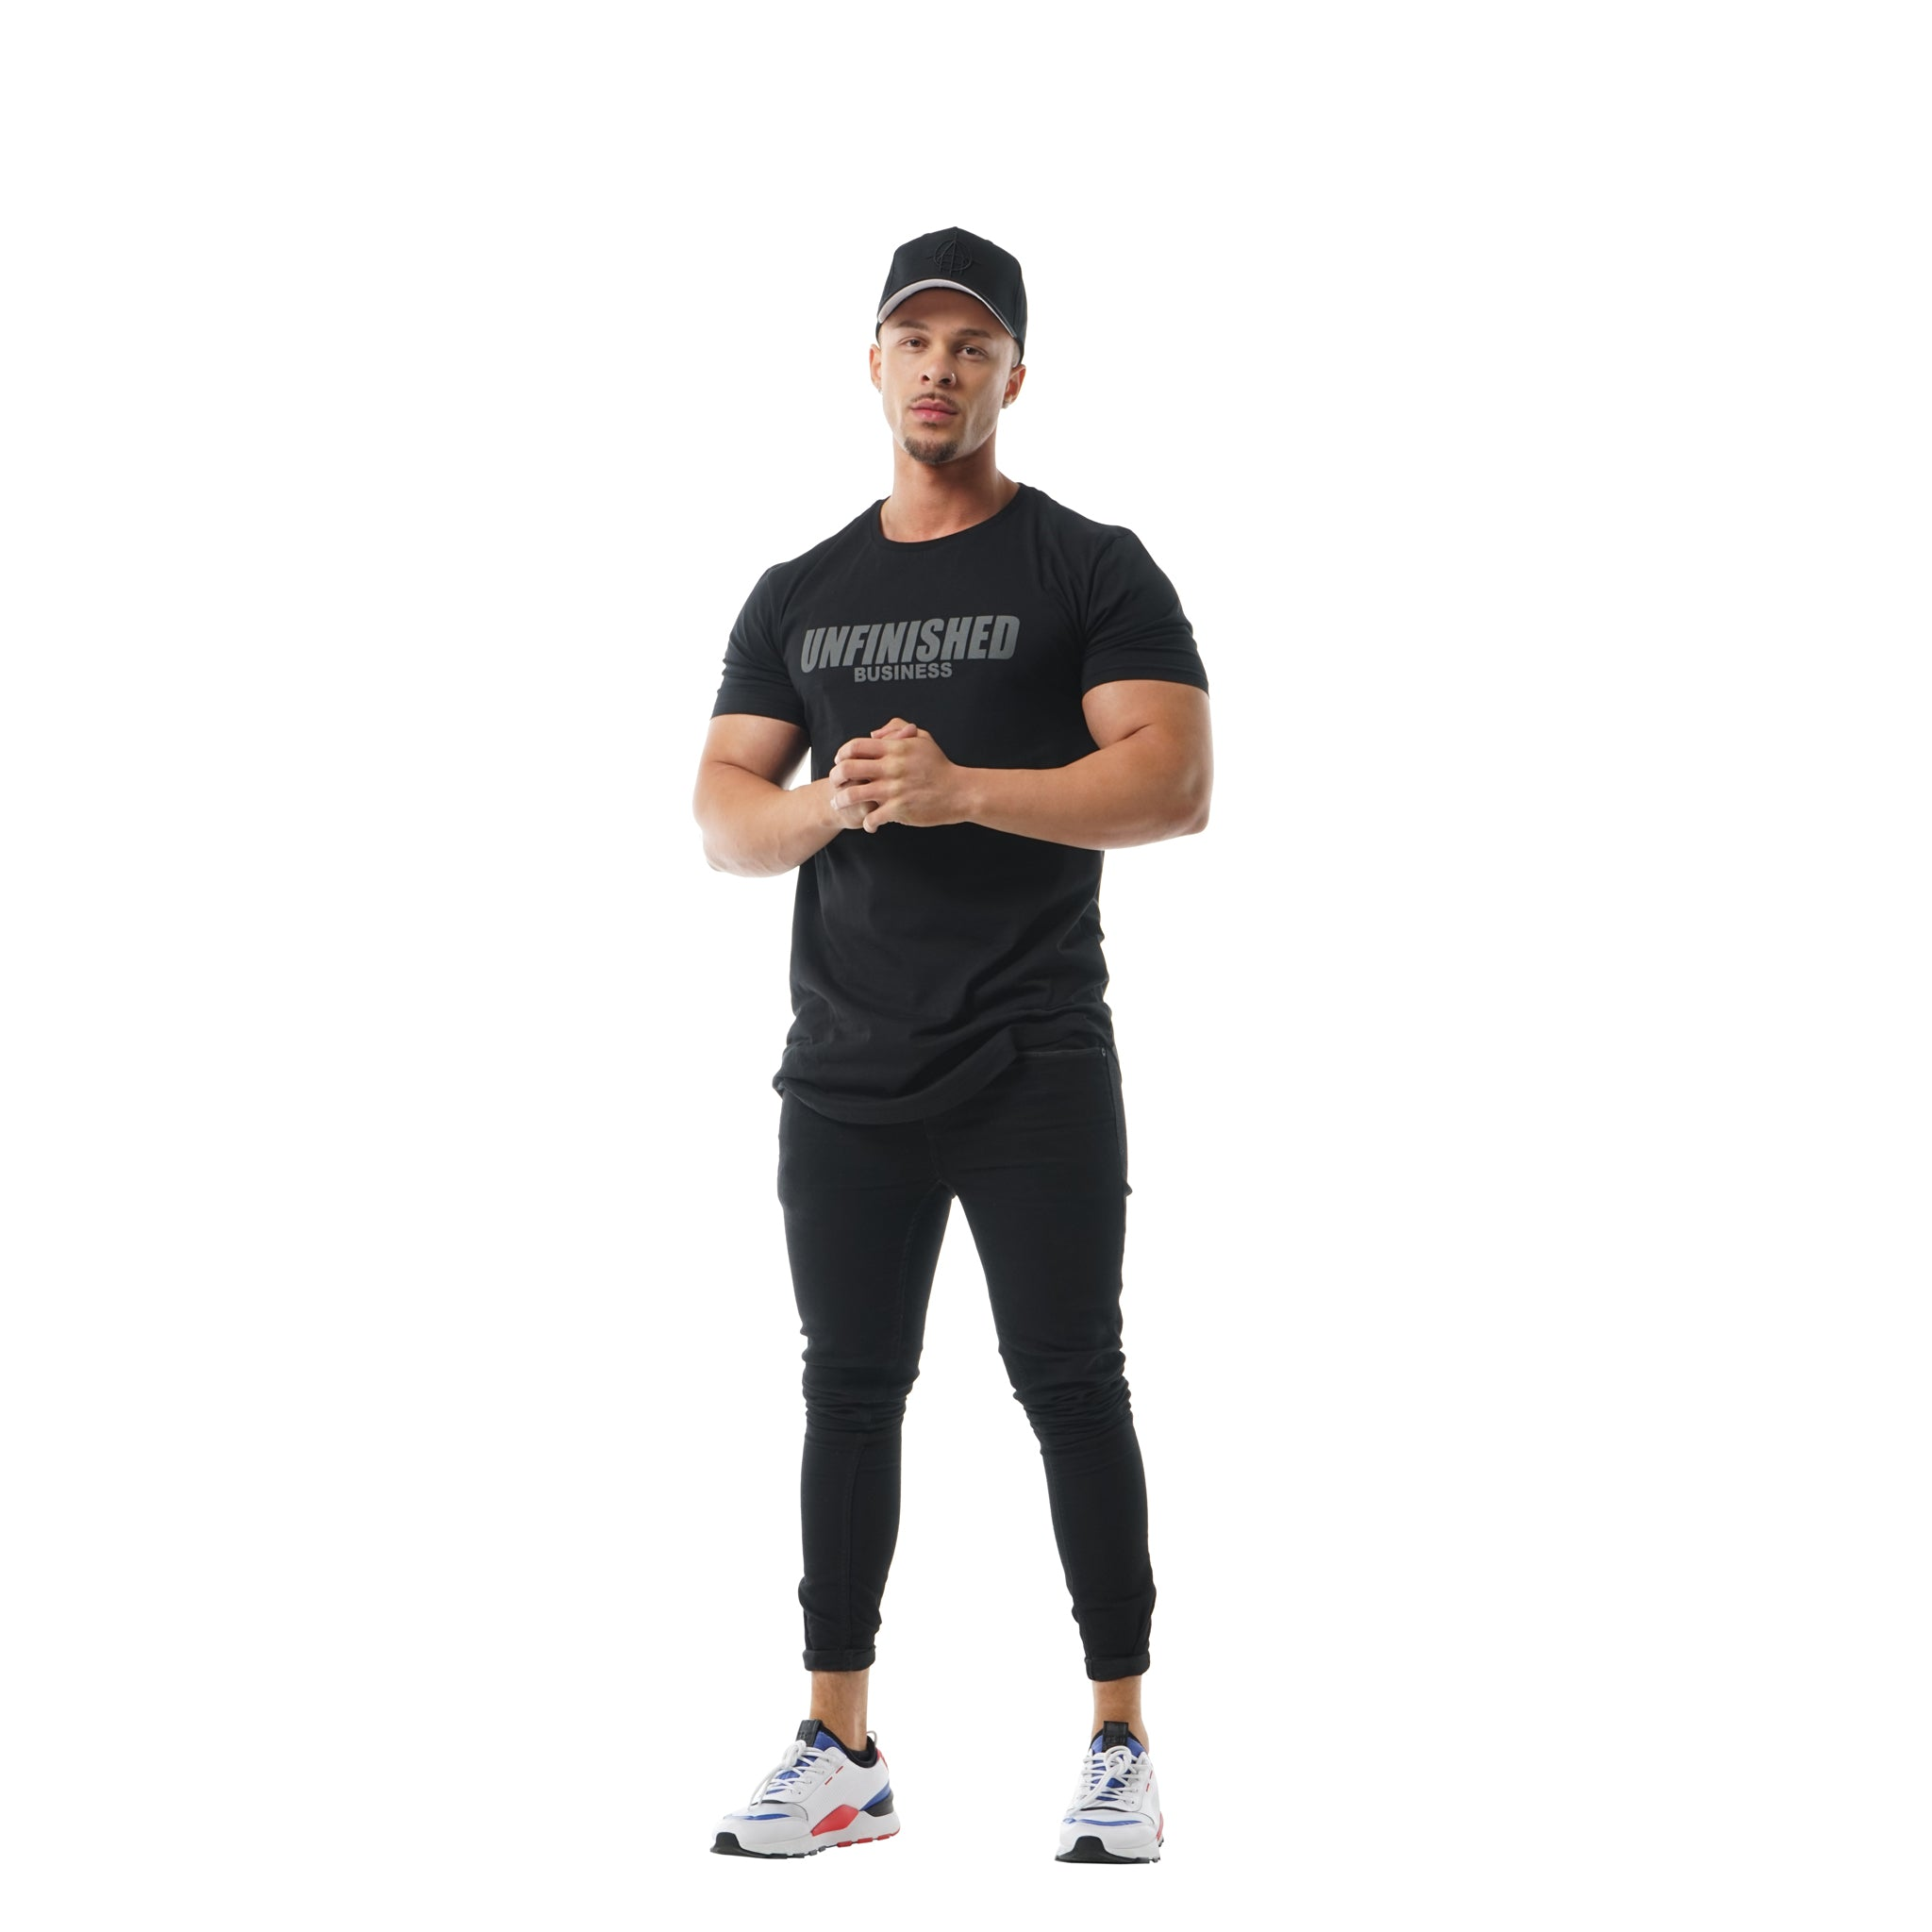 S2 BLACKOUT UNFINISHED BUSINESS CURVED HEM TEE